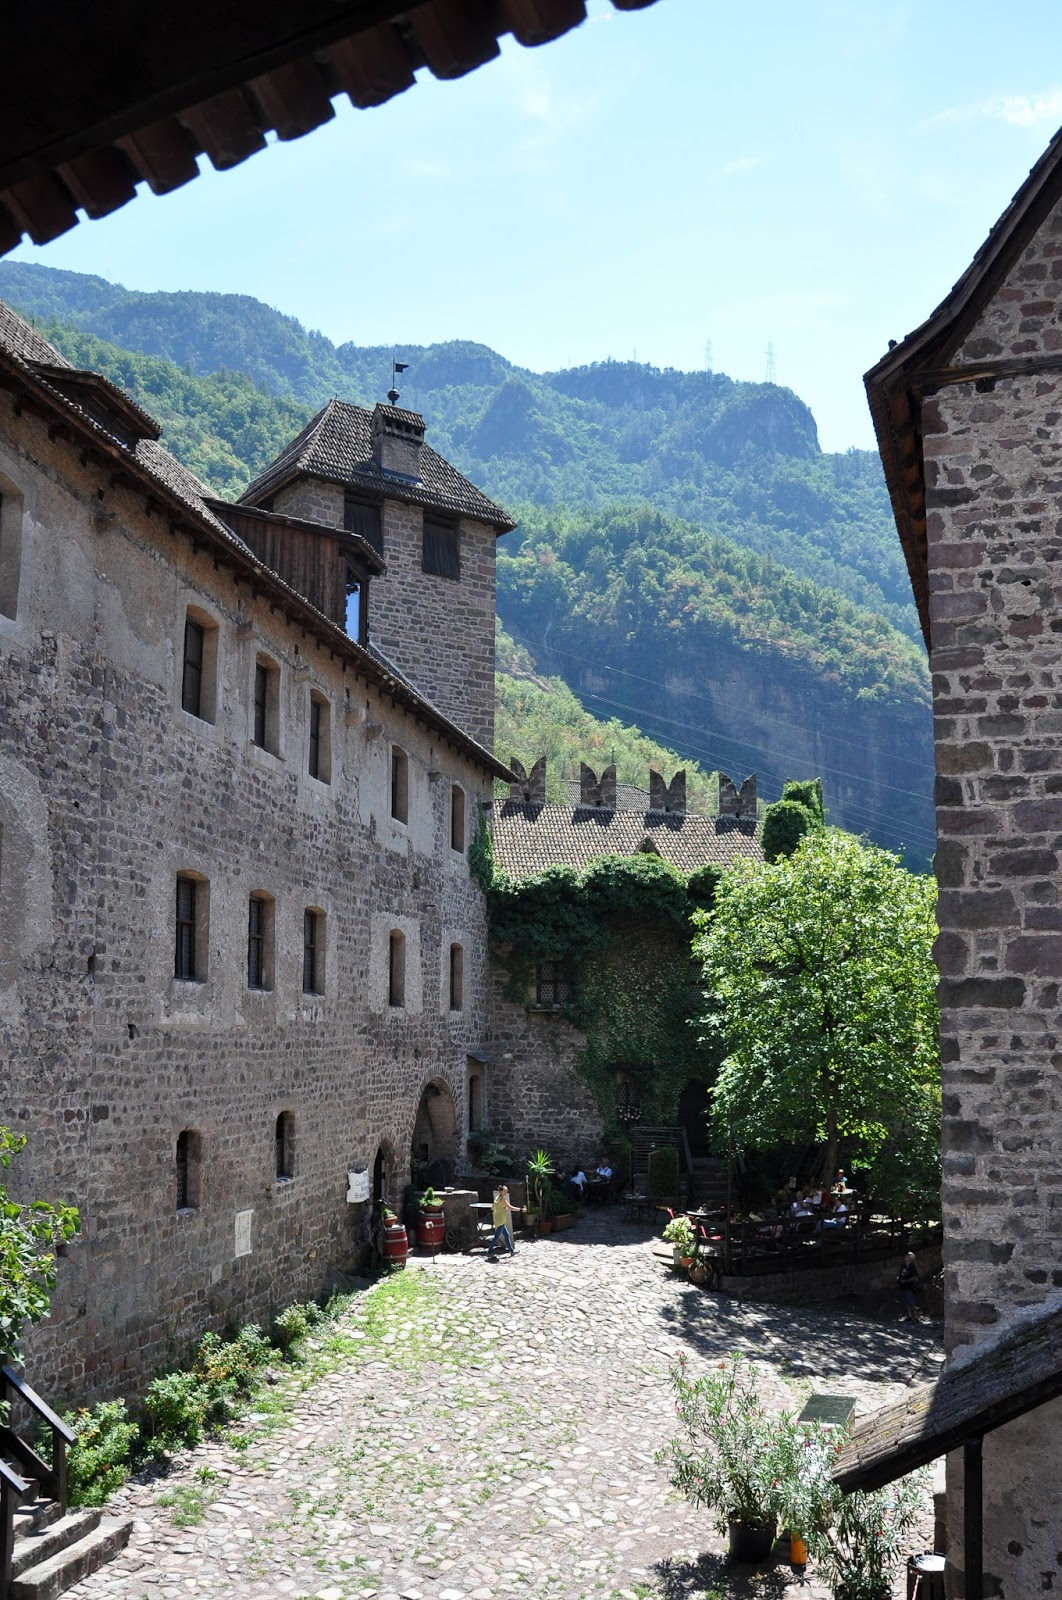 The courtyard, Runkelstein Castle, Bolzano, South Tyrol, Italy